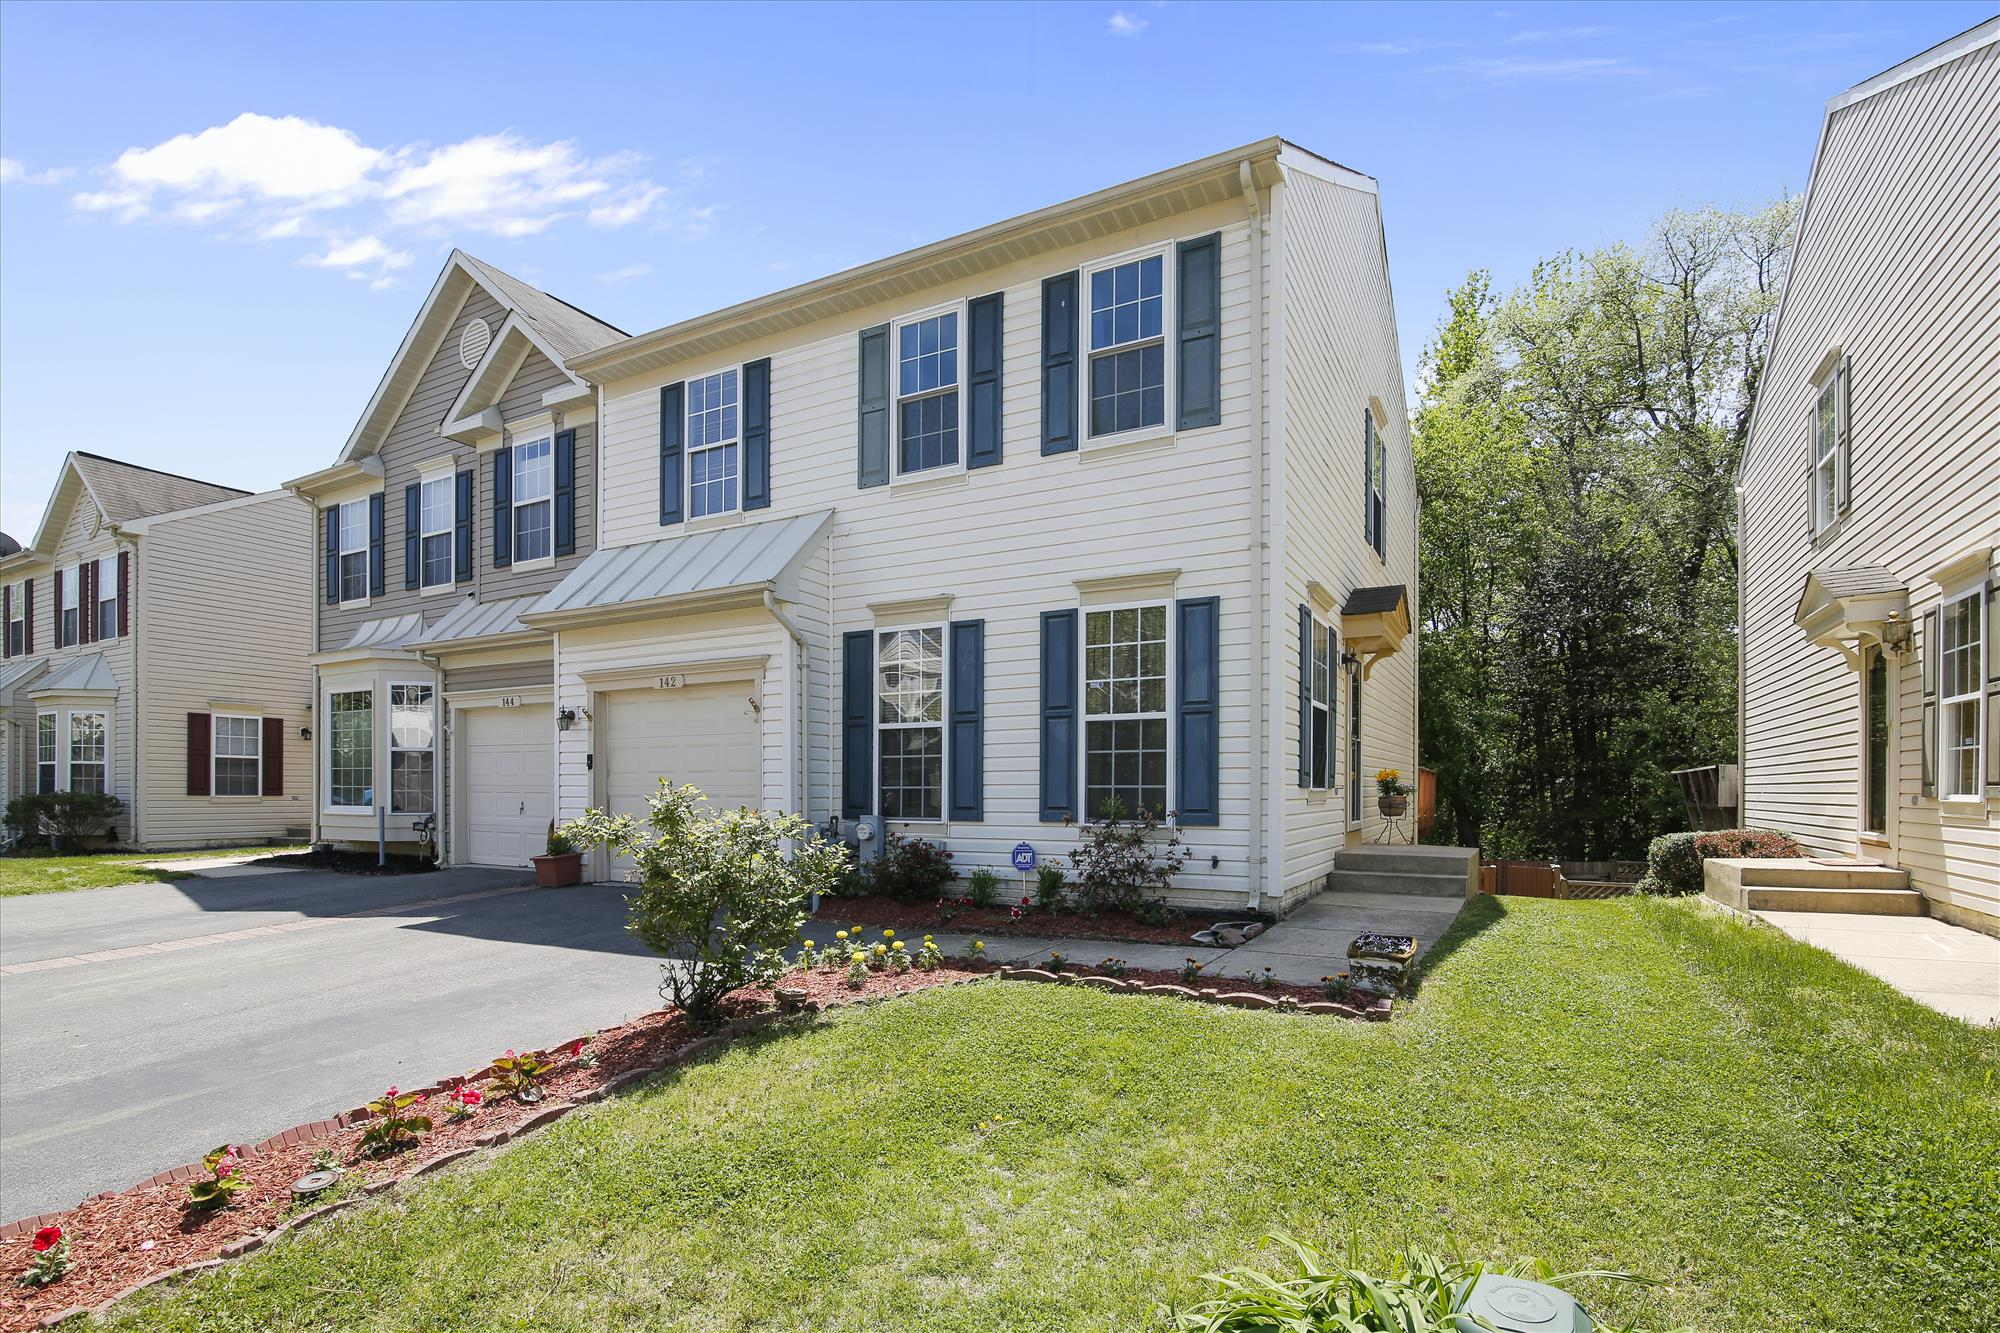 Home for sale near Fort Meade in the Seven Oaks subdivision of Odenton